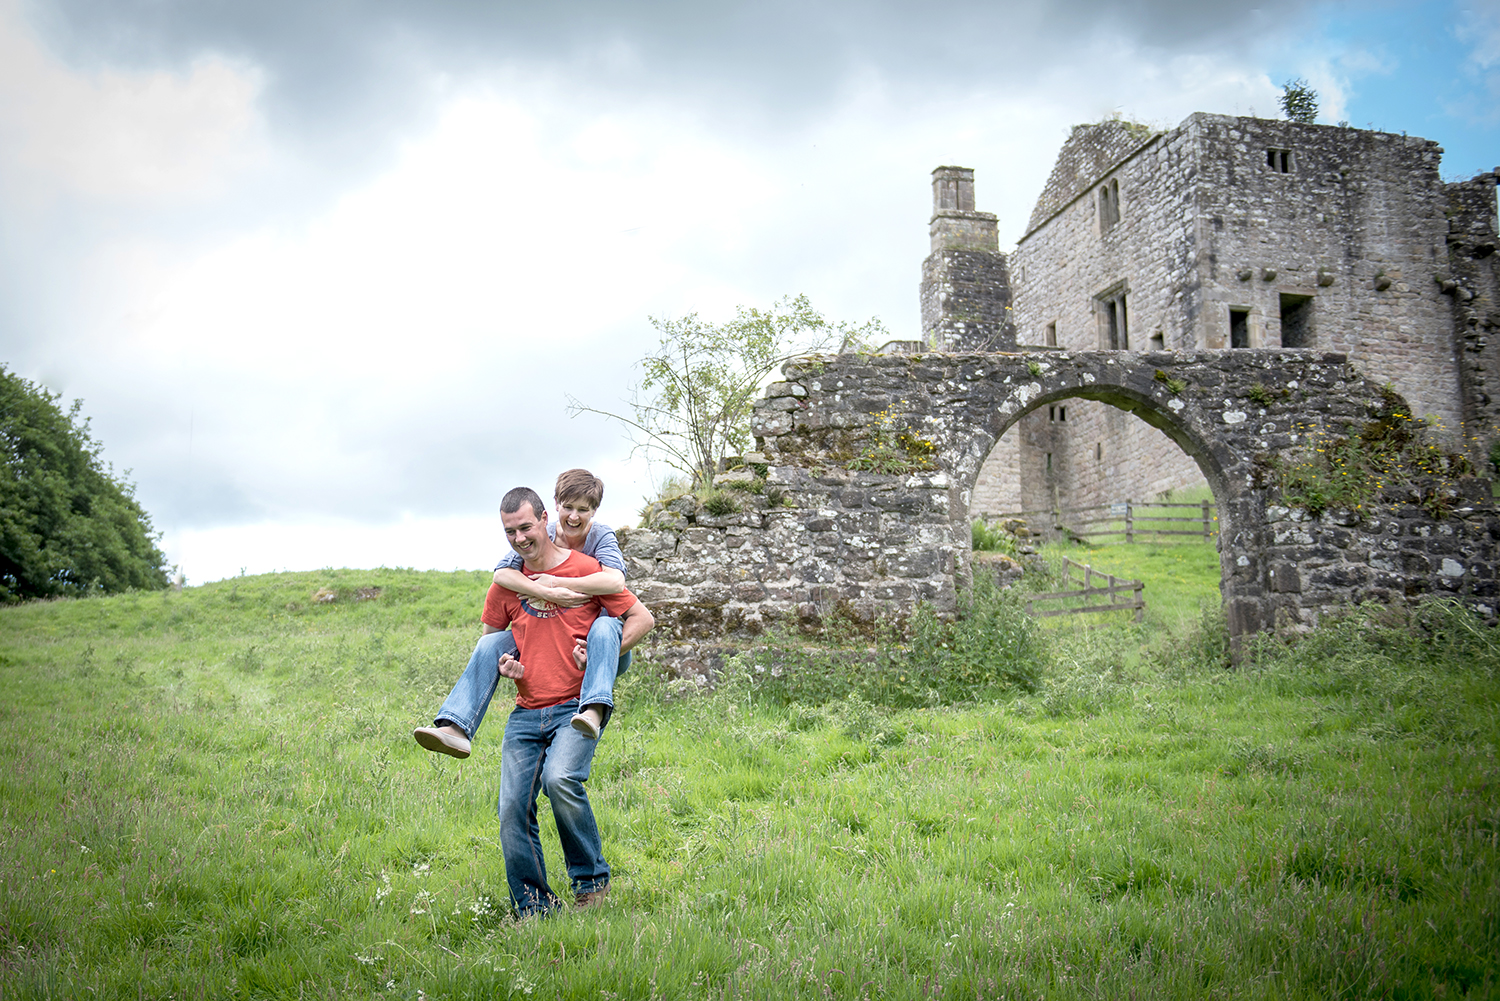 man carrying his fiancée at barden town in bolton abbey during engagement photo shoot